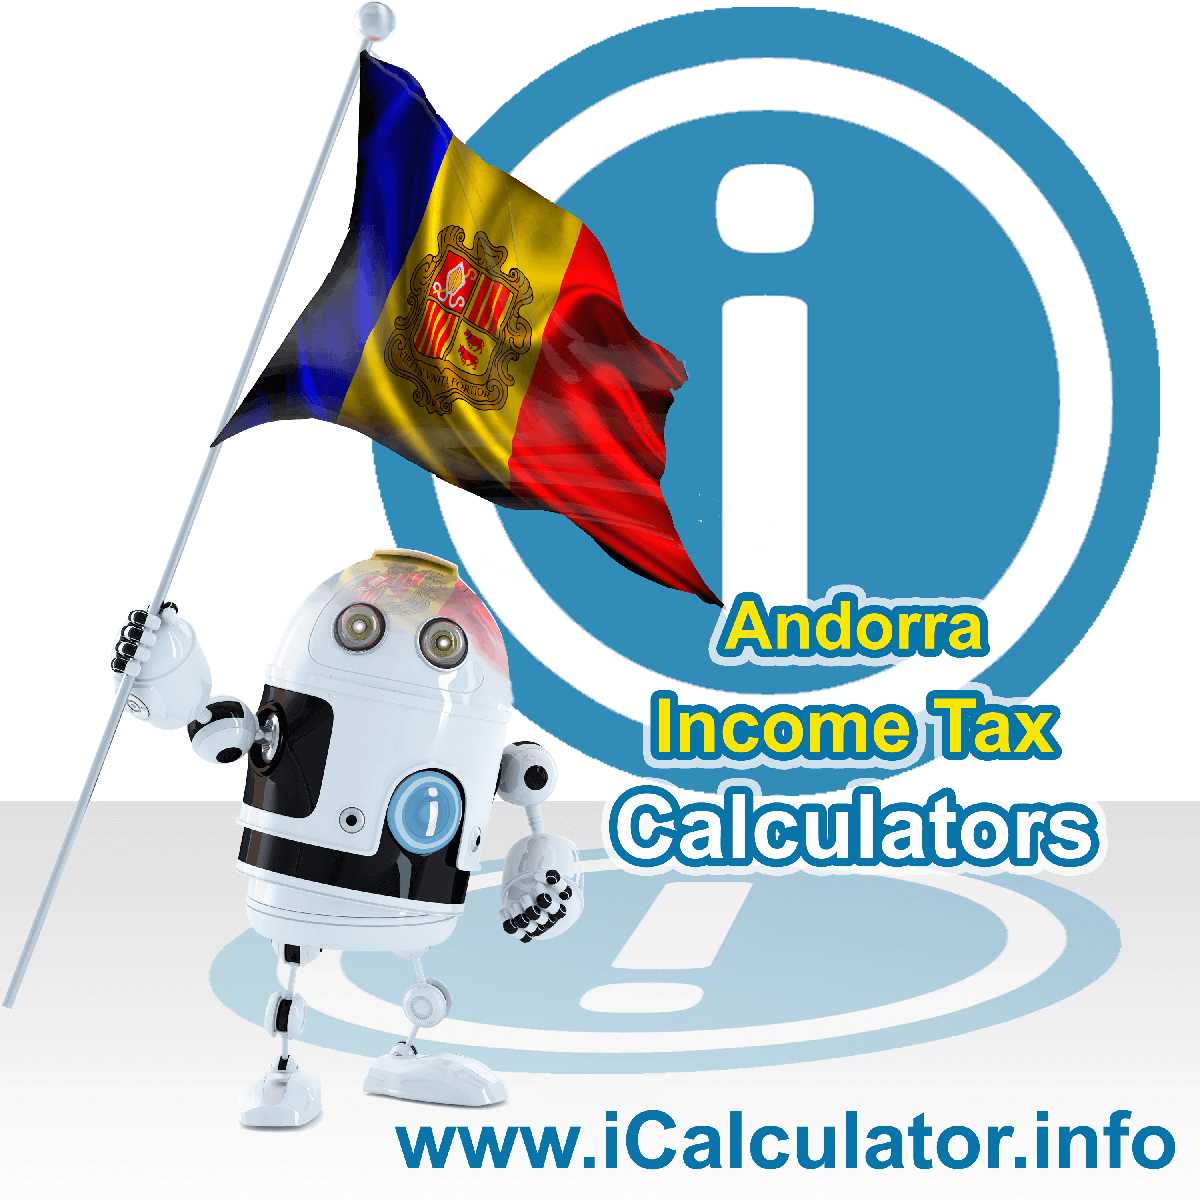 Andorra Income Tax Calculator. This image shows a new employer in Andorra calculating the annual payroll costs based on multiple payroll payments in one year in Andorra using the Andorra income tax calculator to understand their payroll costs in Andorra in 2021